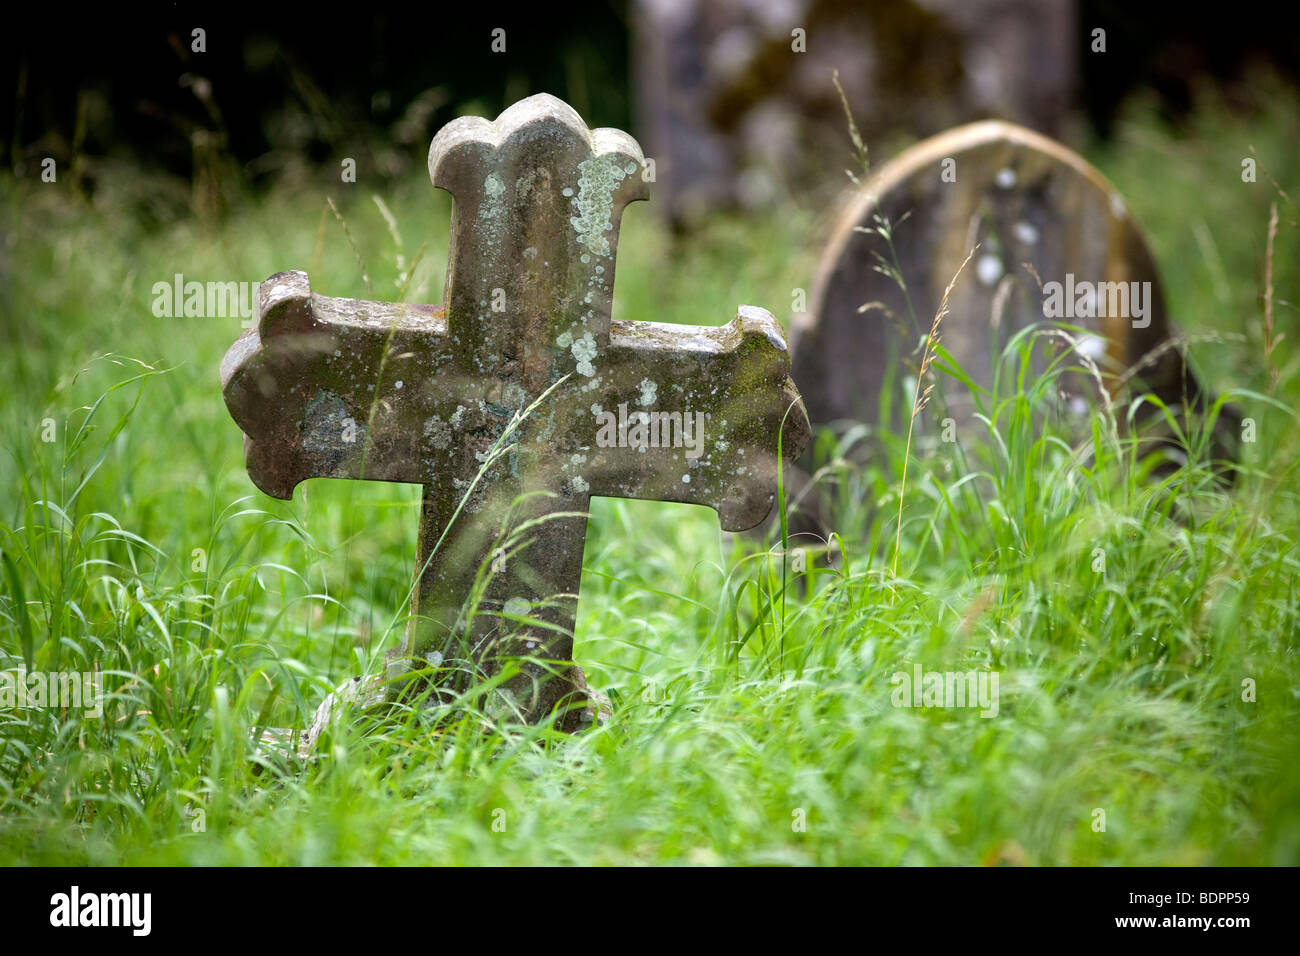 A grave stone in an over grown neglected church yard, Worcestershire, England, UK. - Stock Image